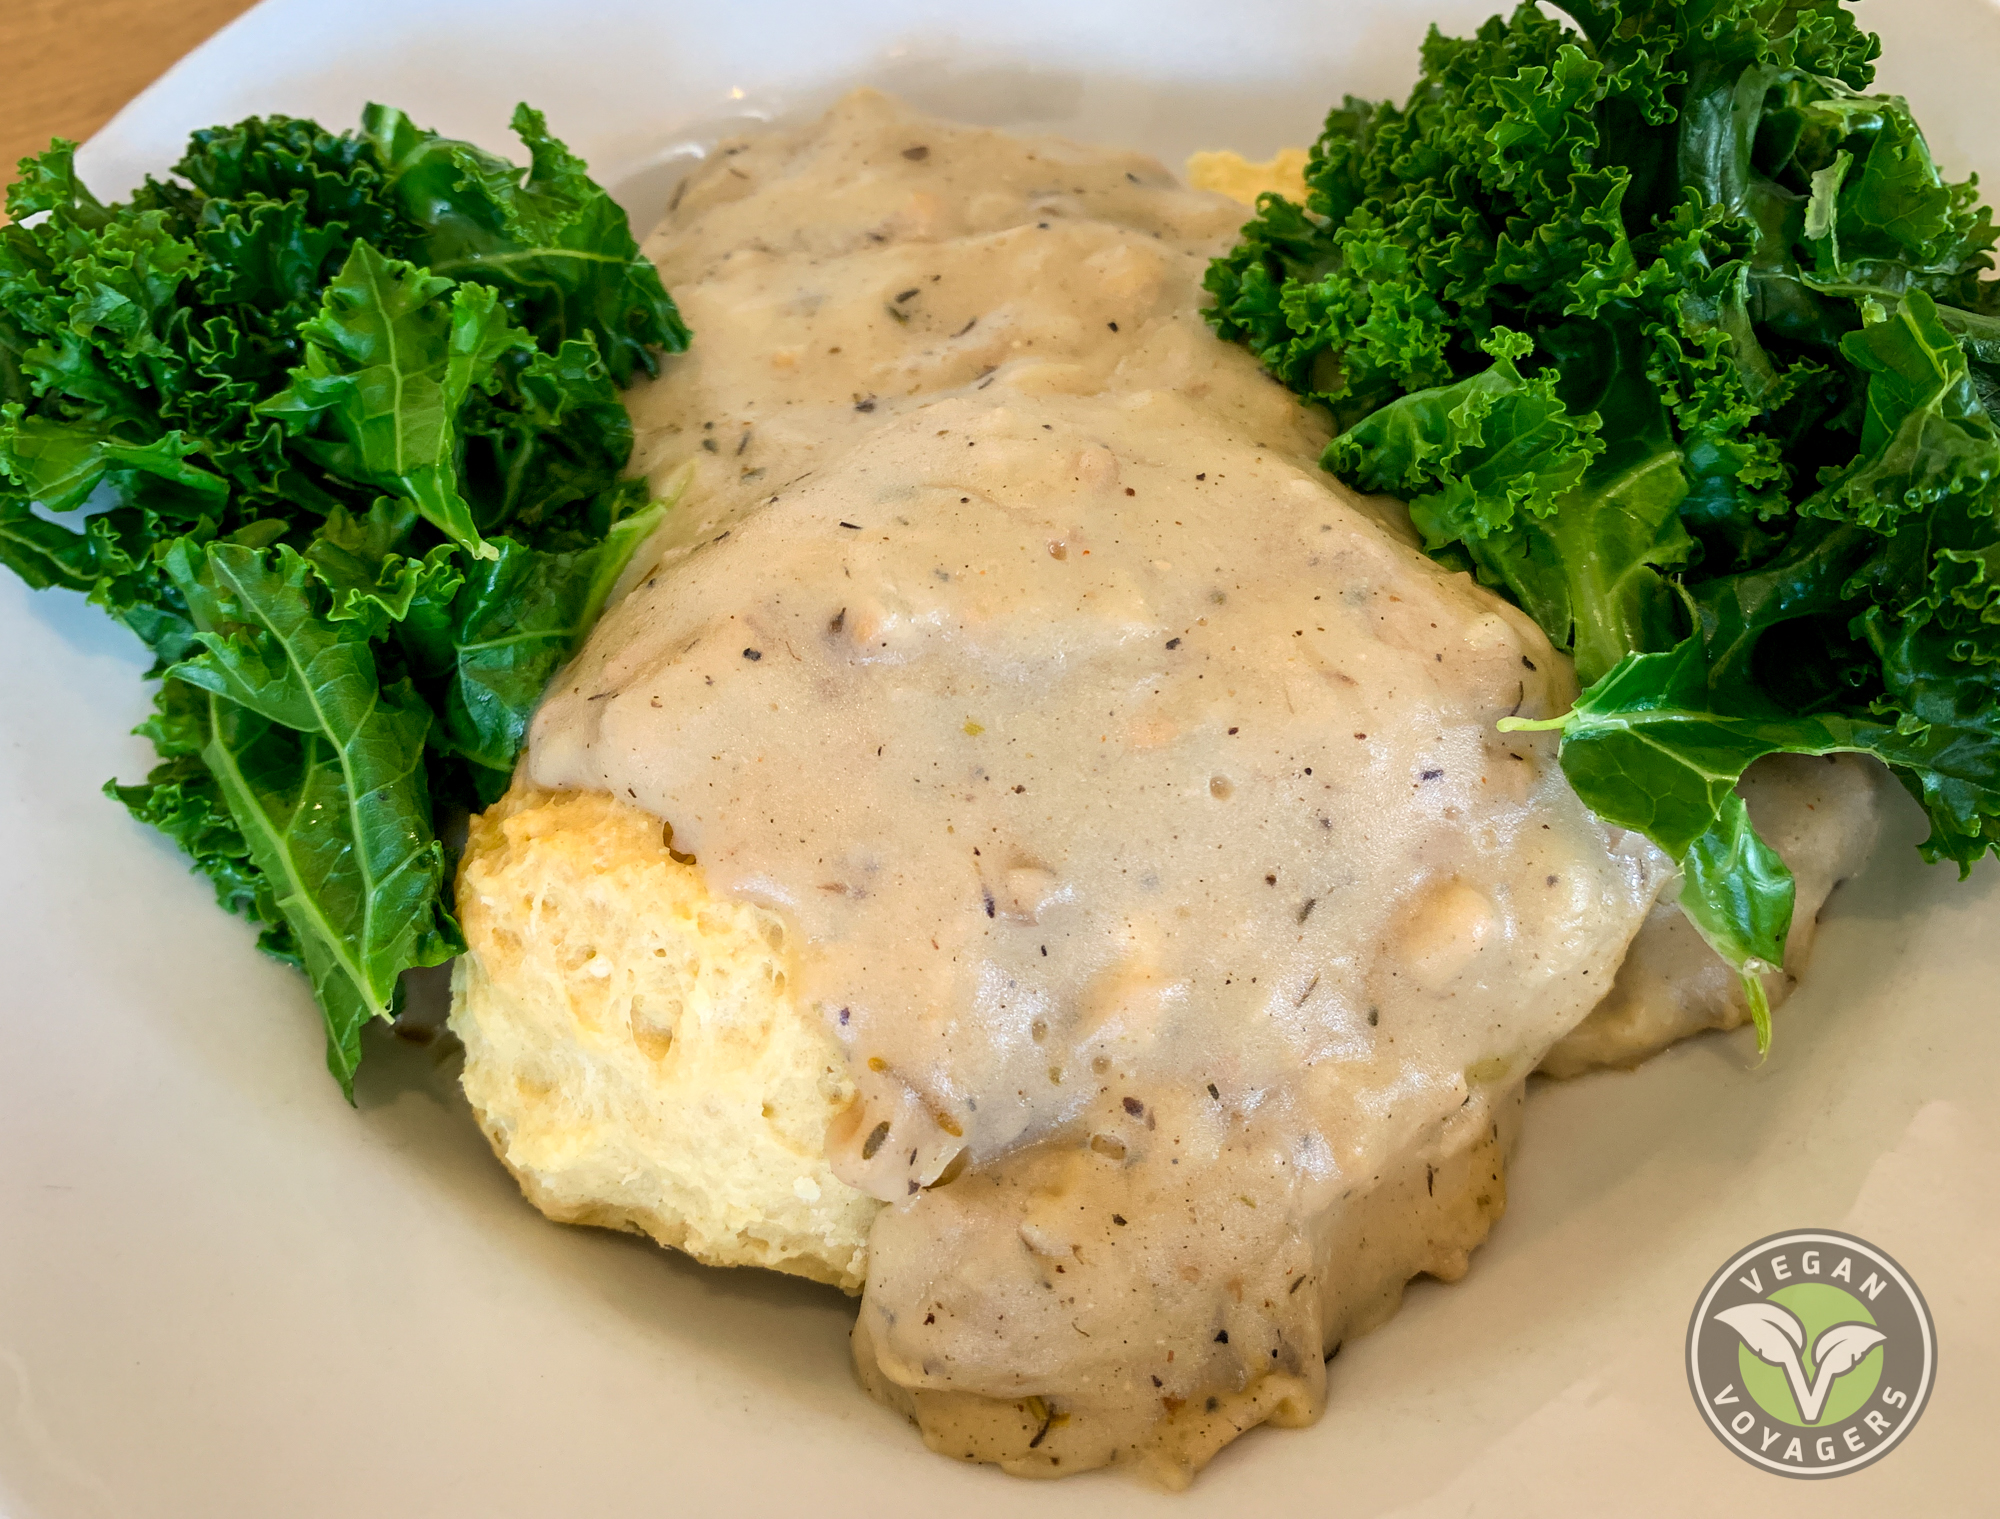 Vegan biscuits and gravy | Off The Griddle, Portland, OR